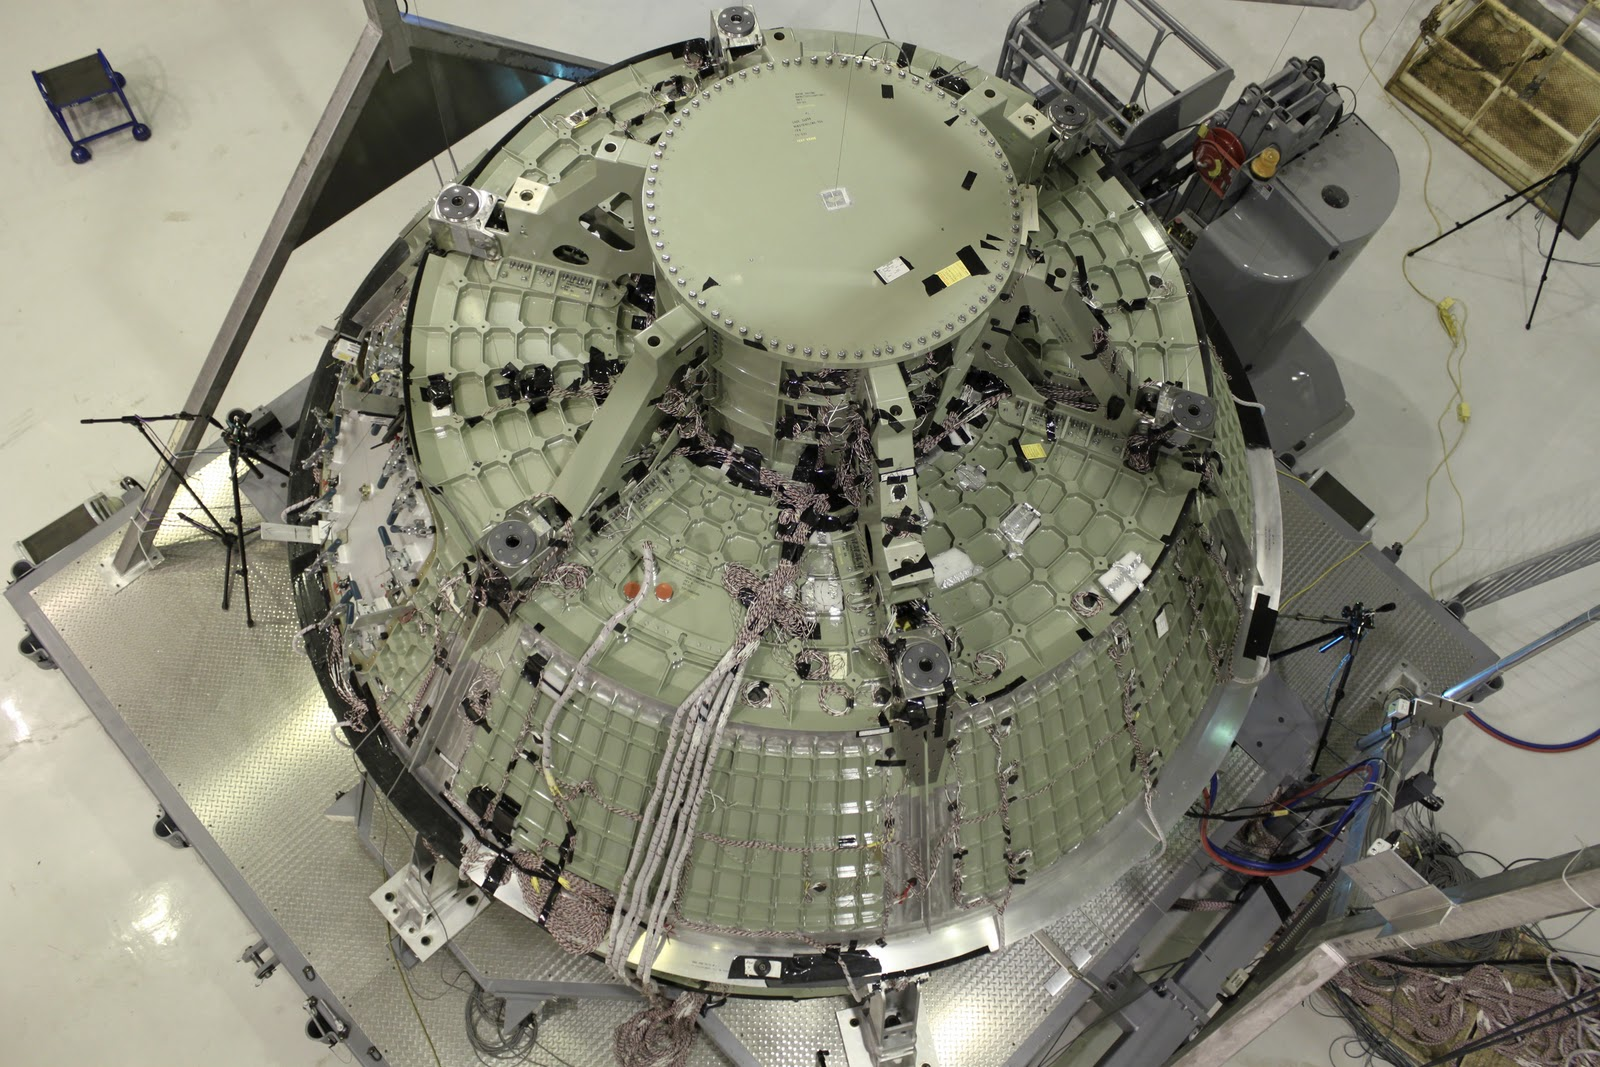 orion spacecraft - photo #13